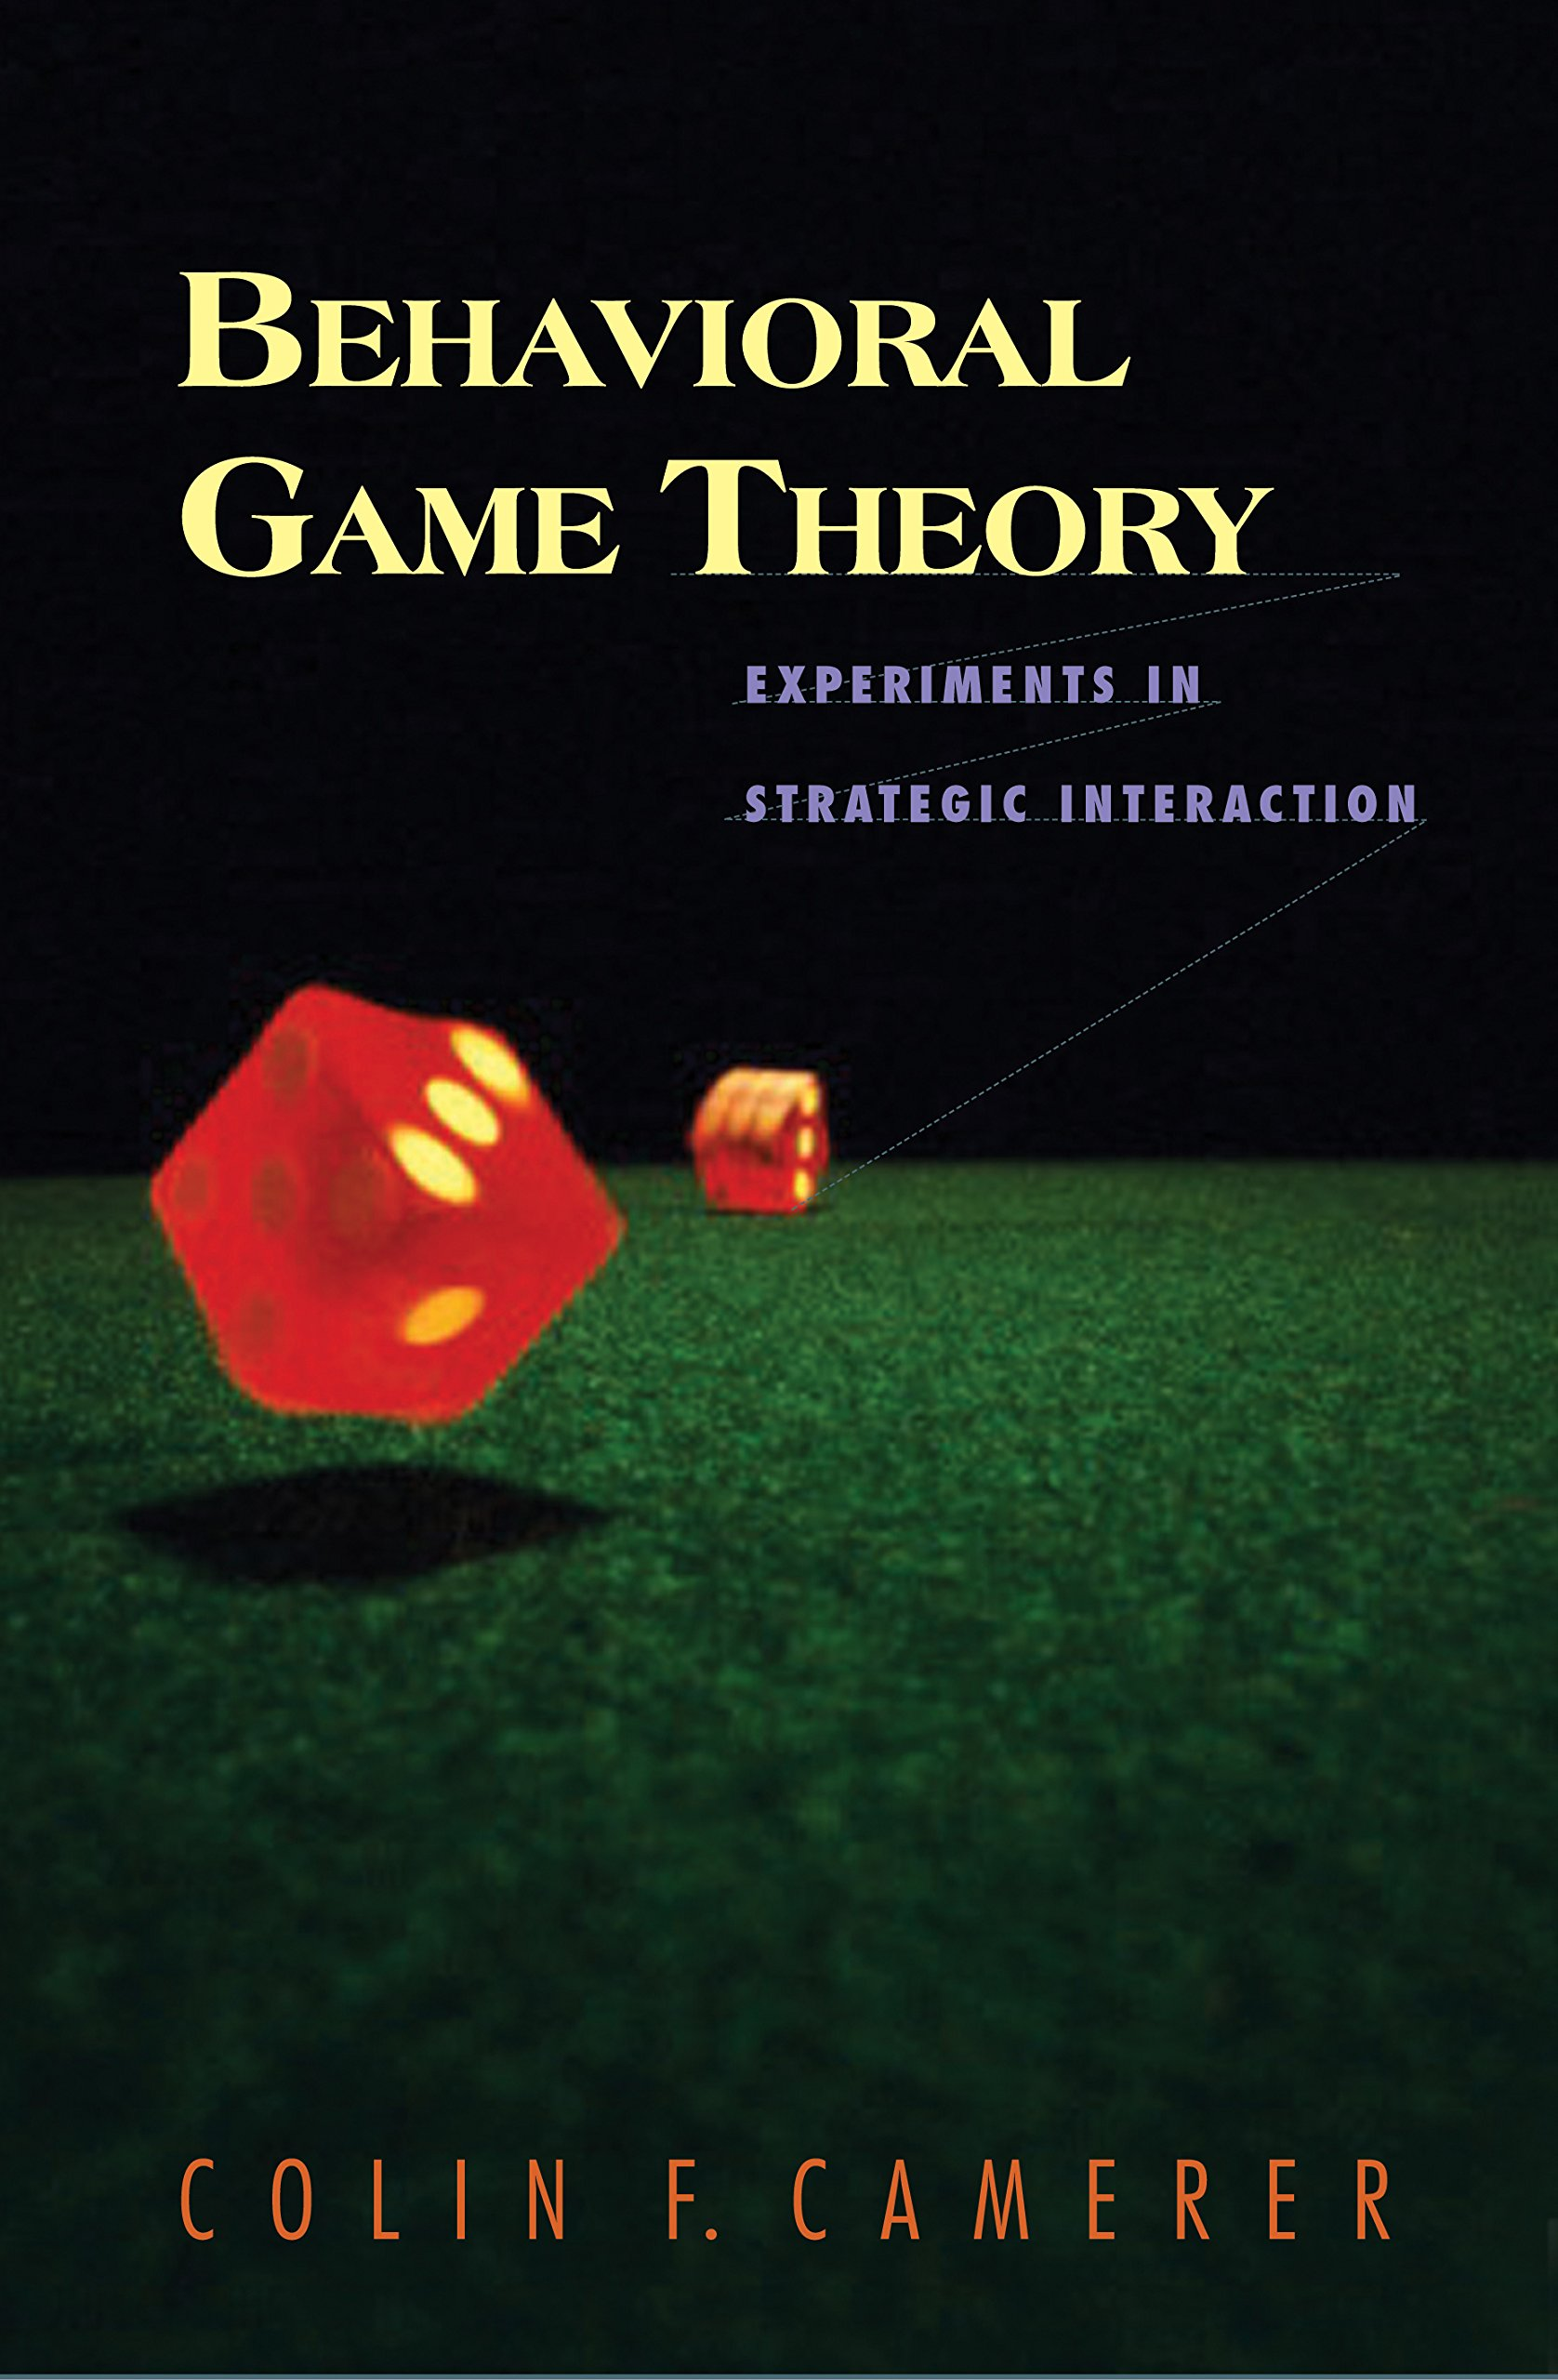 Behavioral Game Theory: Experiments in Strategic Interaction (The Roundtable Series in Behavioral Economics)